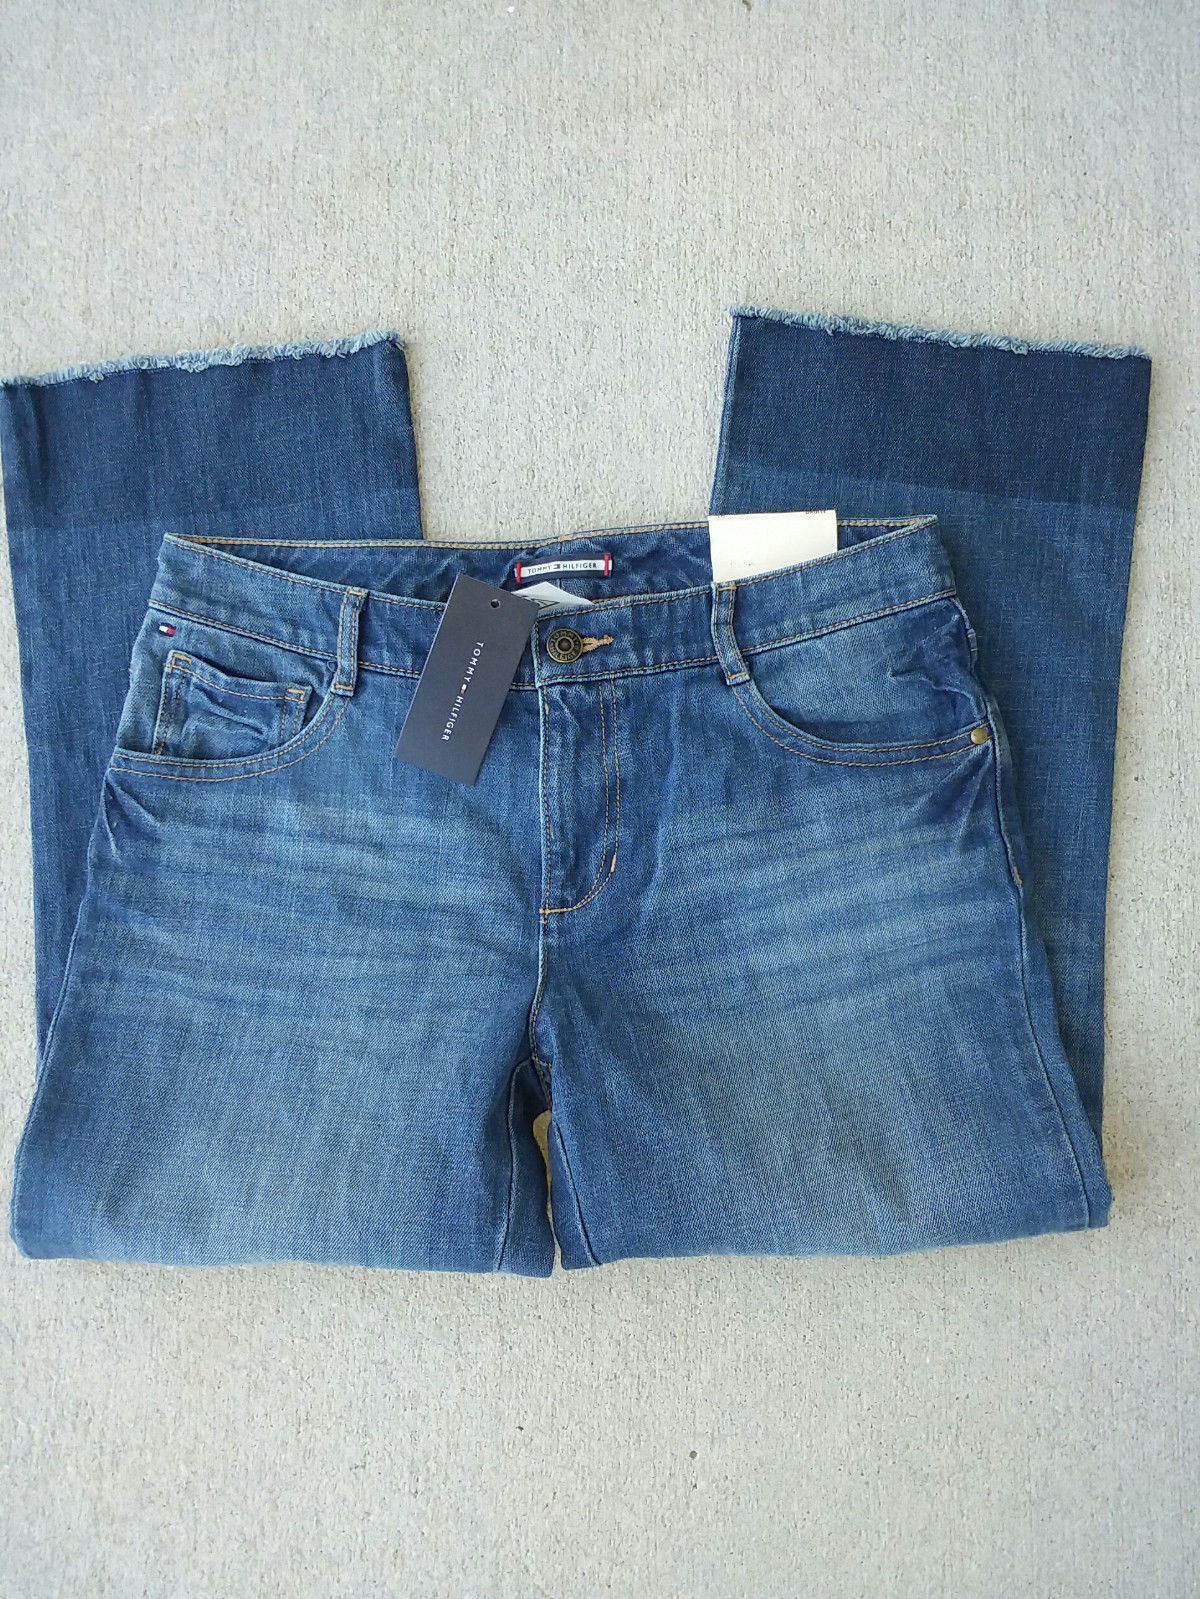 Tommy Hilfiger Girl's Below the Waist Jeans, 16 image 2